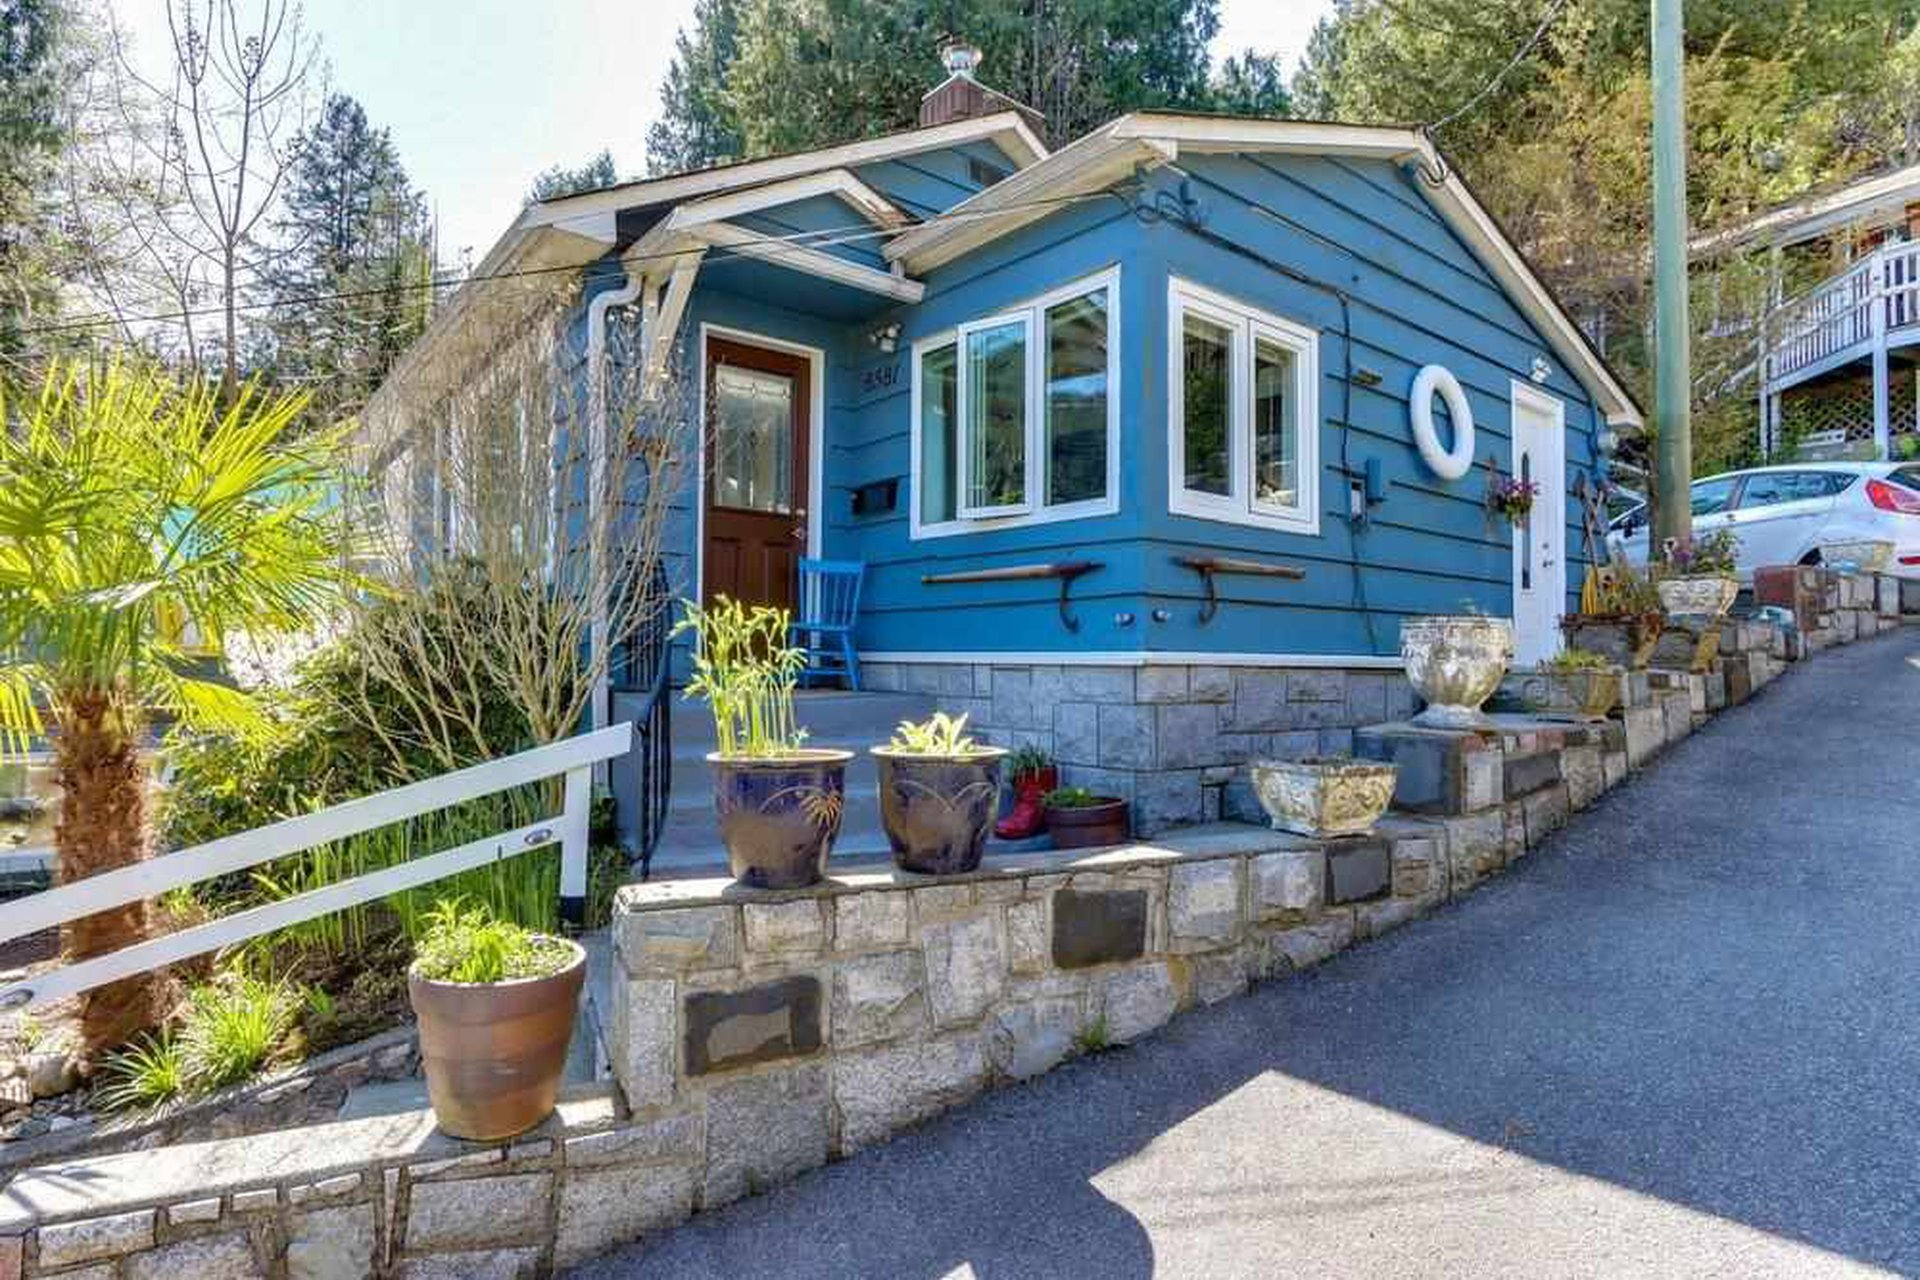 The Horseshoe Bay Cottages for sale asking price sale price